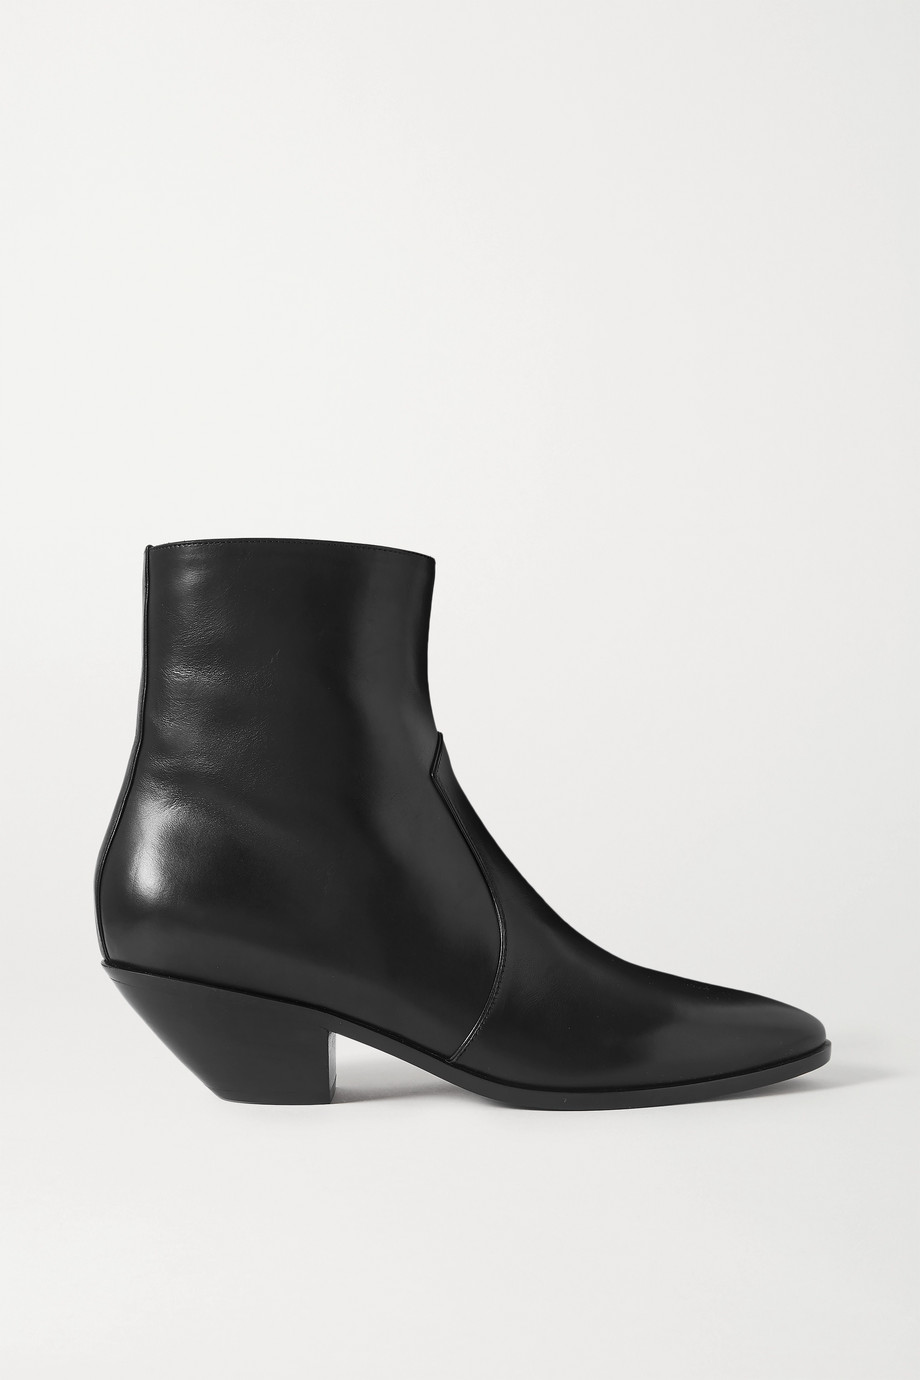 SAINT LAURENT West Ankle Boots aus Leder